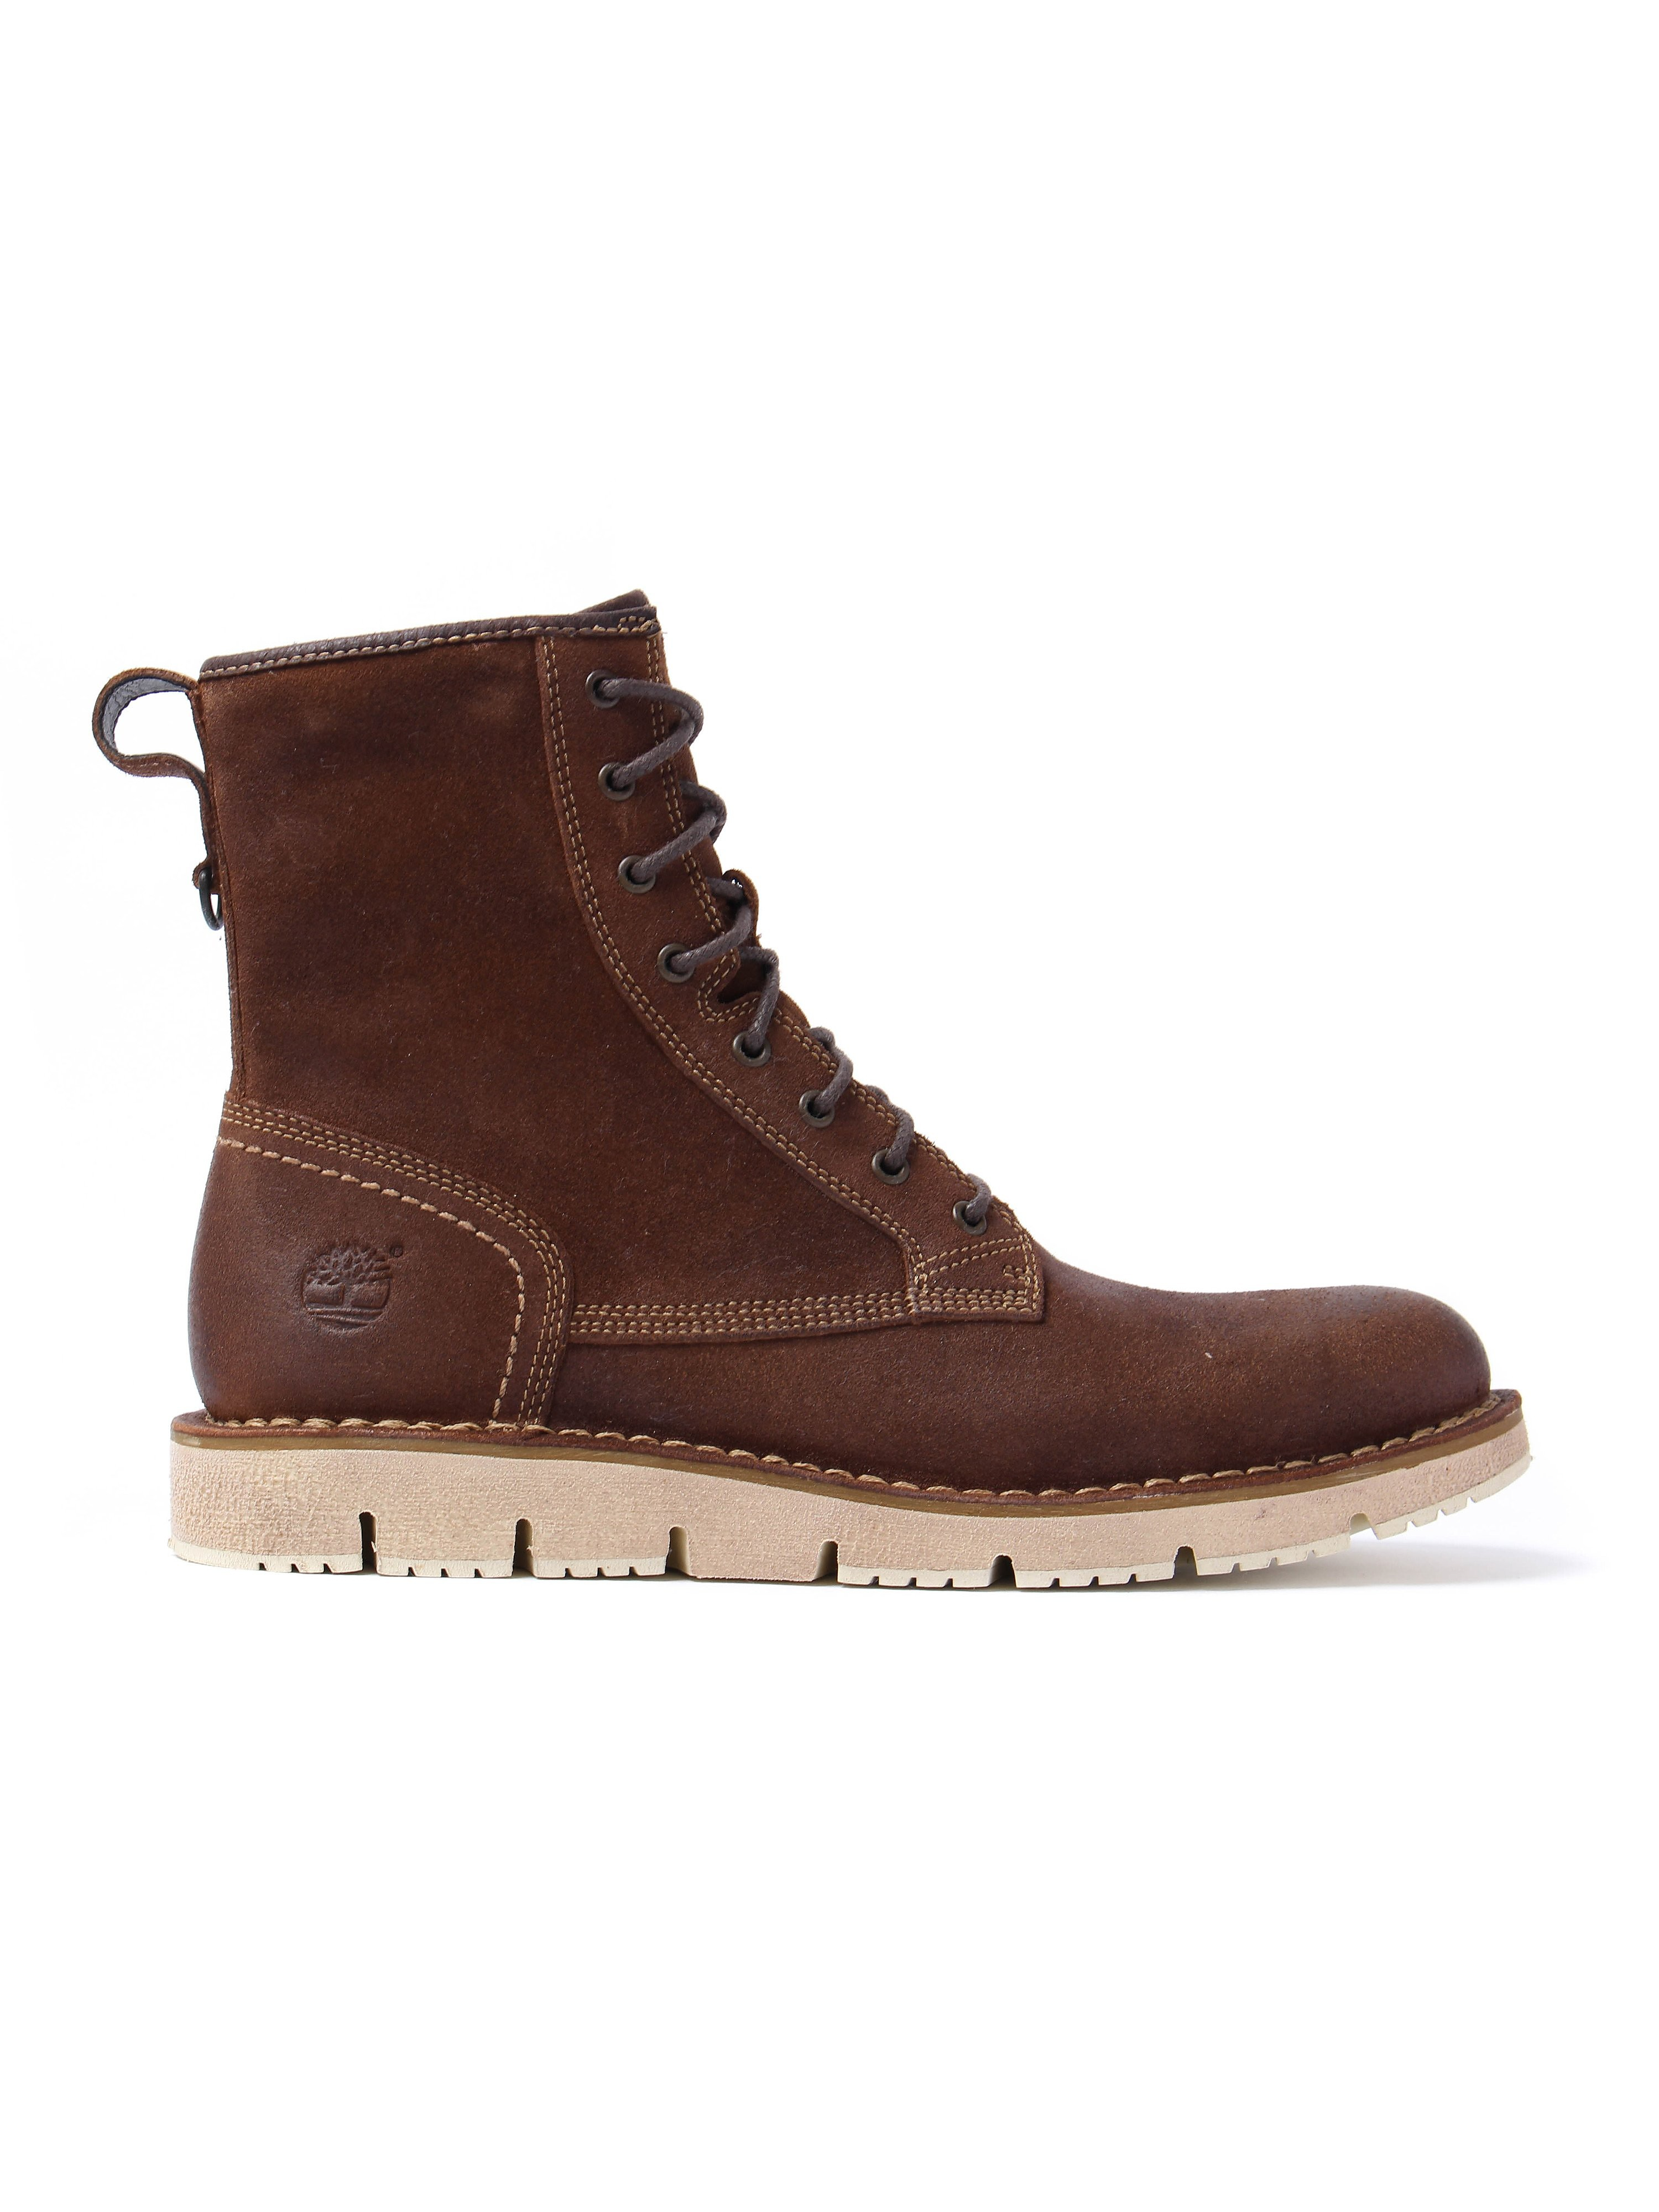 Timberland Westmore Boot - Cocoa